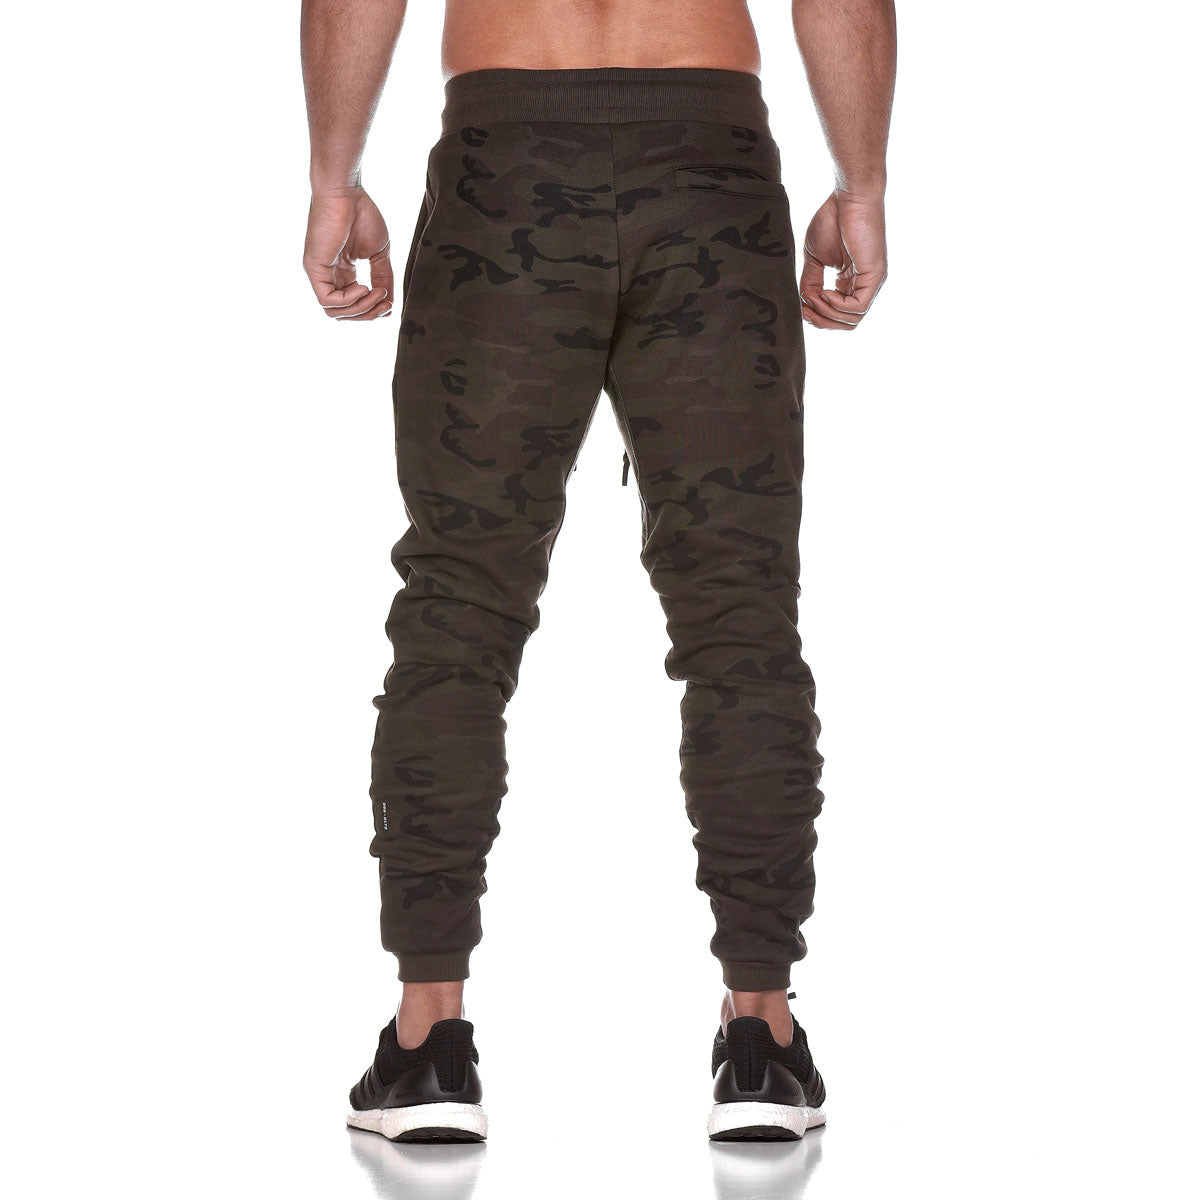 0172. RainPlus™ Essential Fleece Jogger - Dark Camo